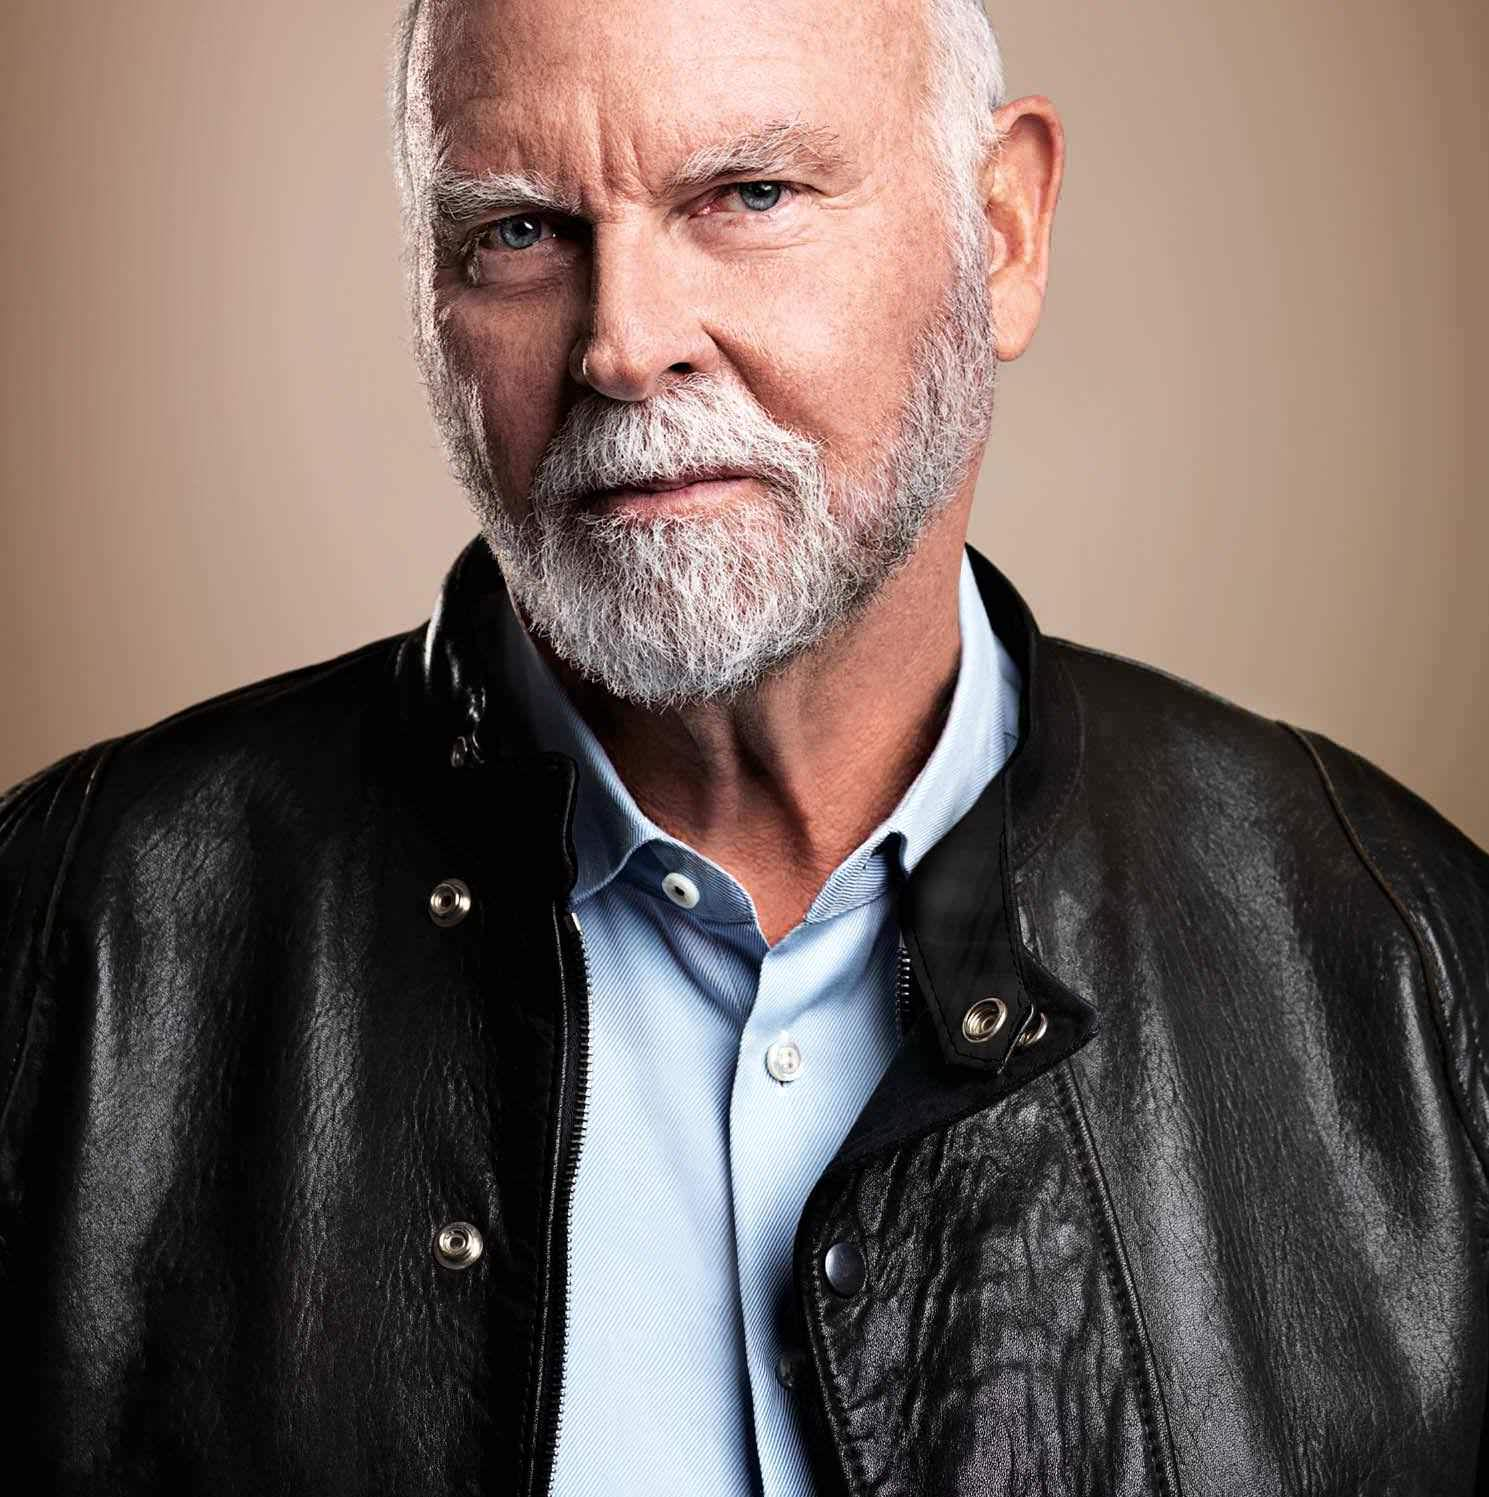 What's wrong with Craig Venter?